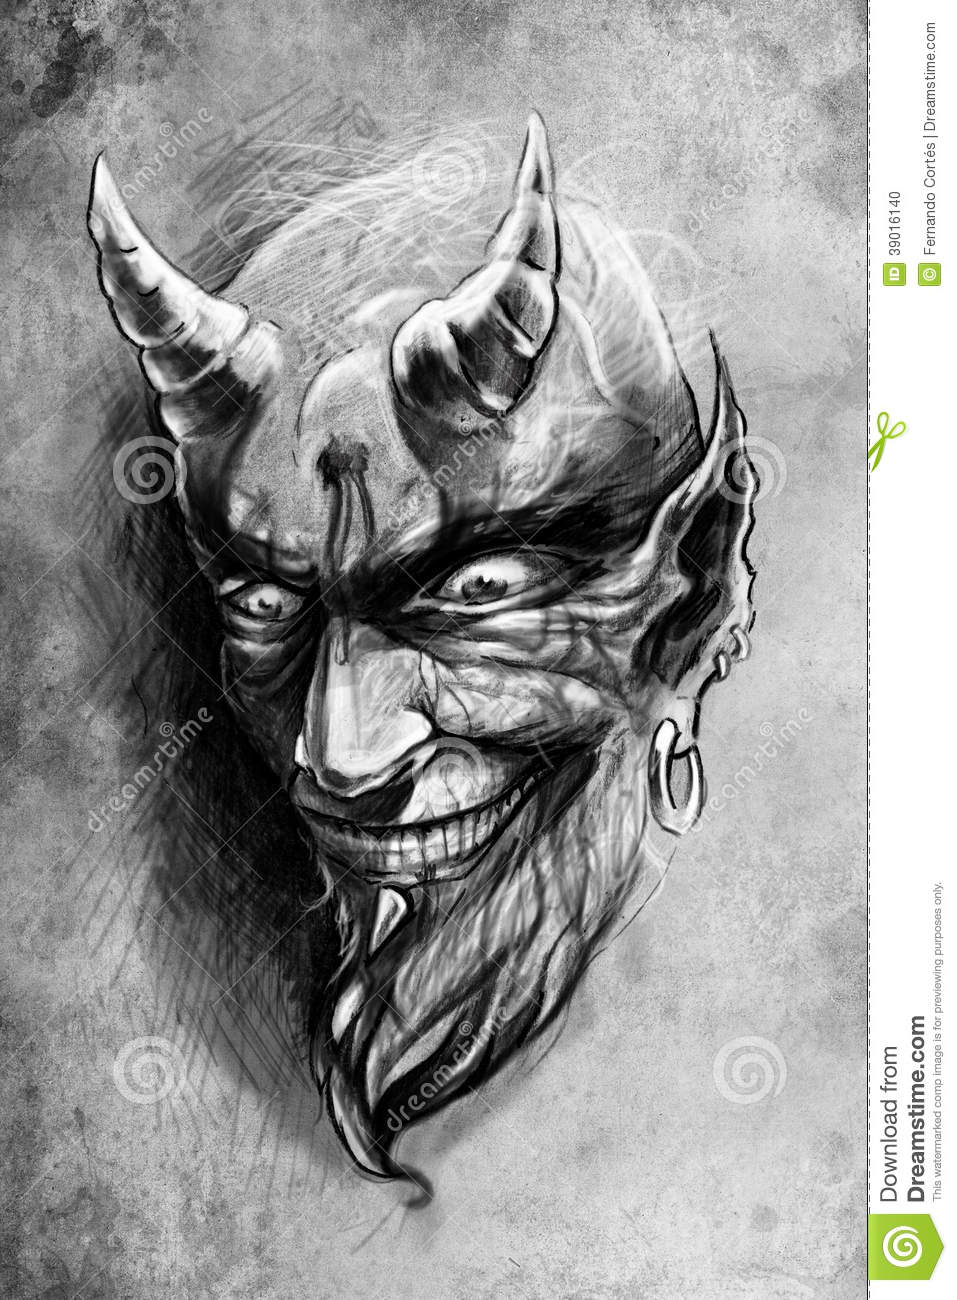 5462031a5ae98 Tattoo Devil, Illustration, Handmade Draw Stock Illustration ...